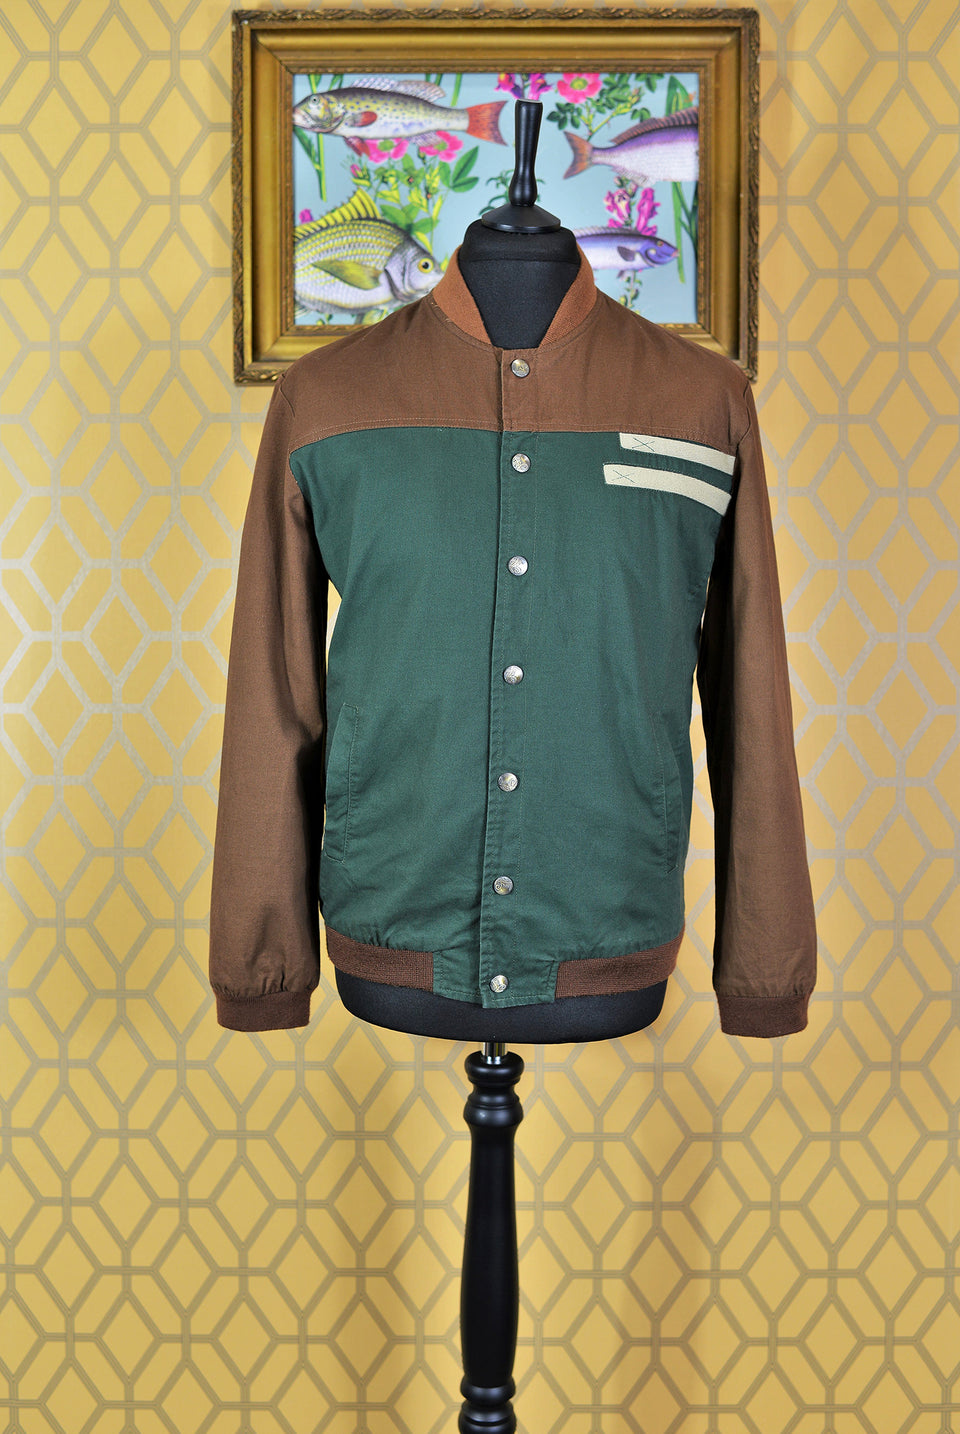 FASHION COLLECTION Men's Brown & Green Panel Bomber Jacket, Slim Fit Size 2XL. Pre-Loved.